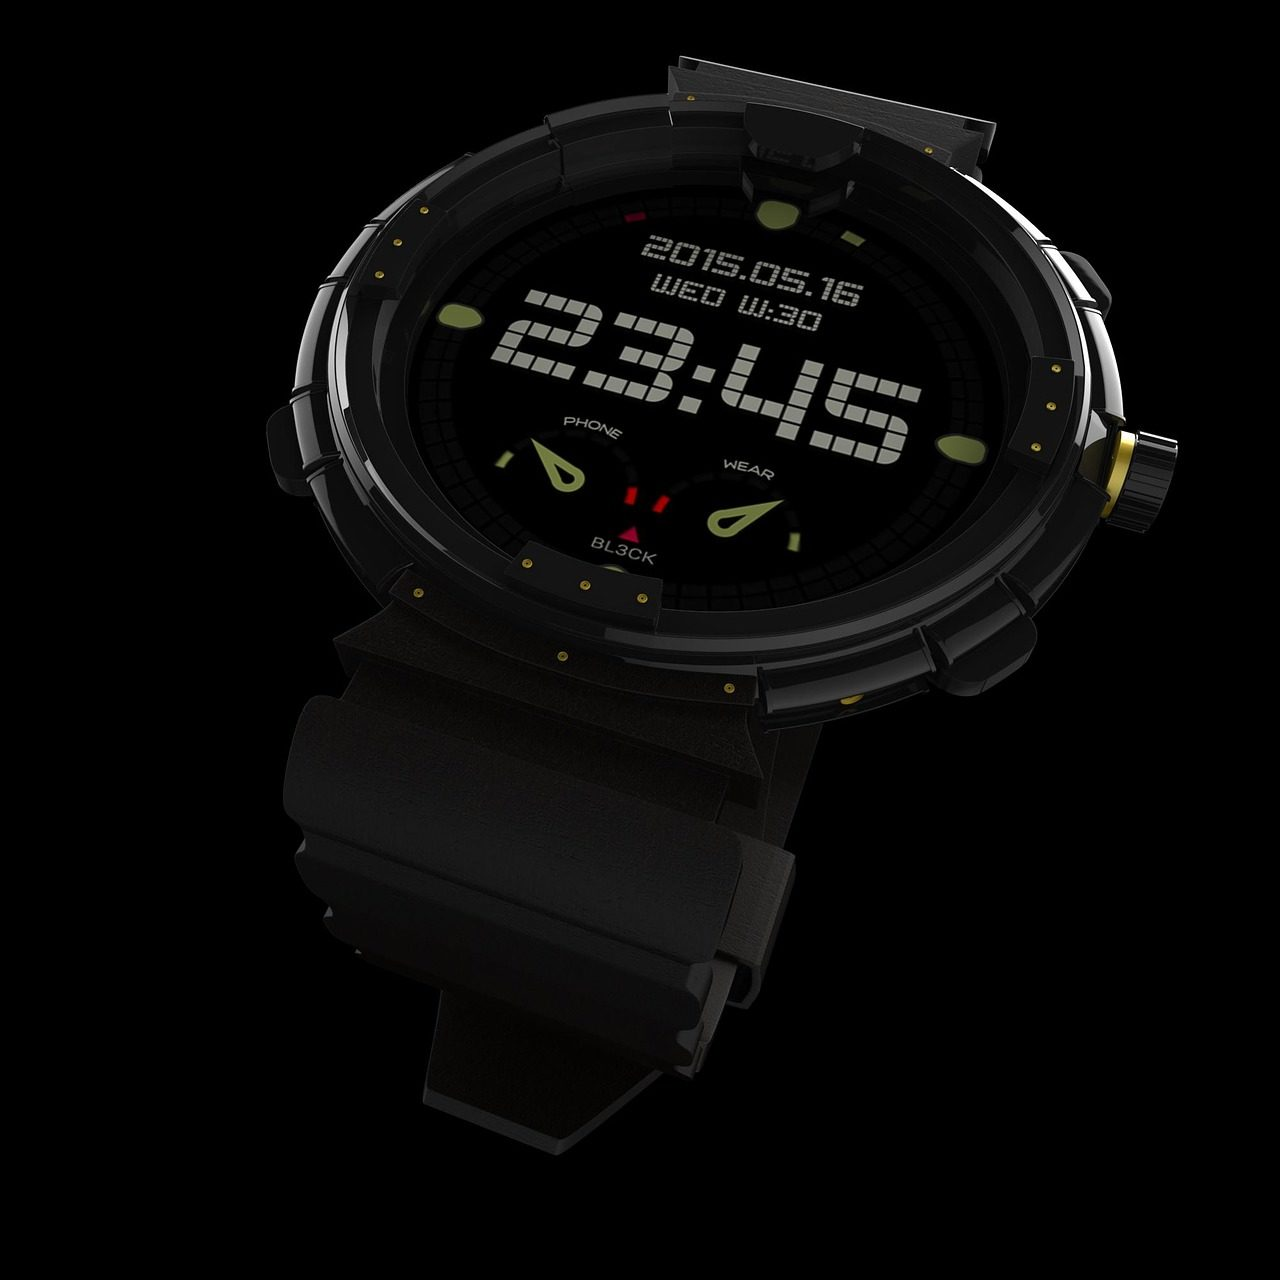 a566f9a3b Top 5 best selling smartwatches 2017 - BlogTechTips